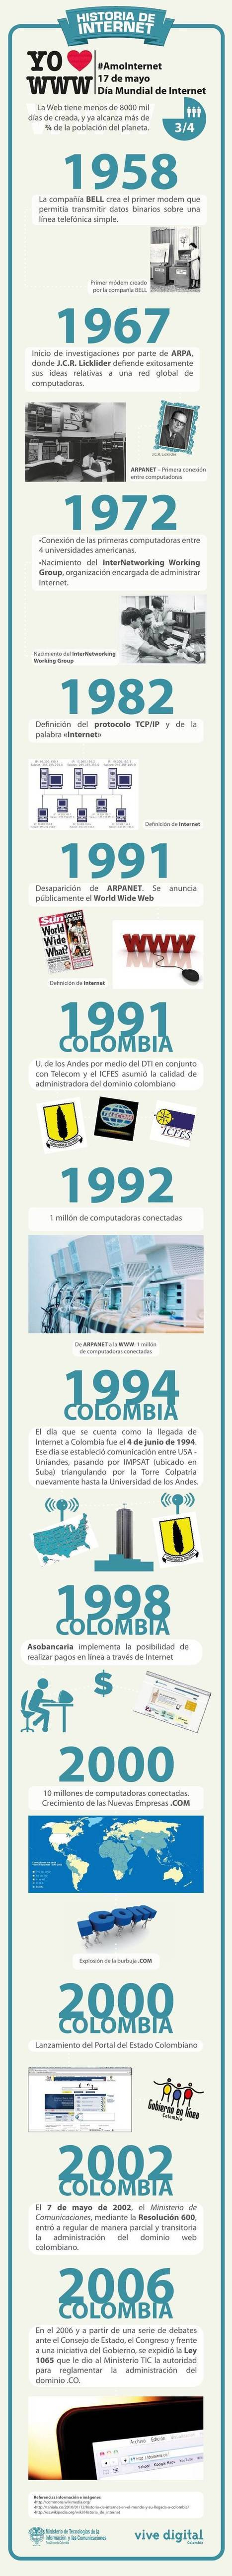 Historia del Internet en Colombia | Internet | Scoop.it